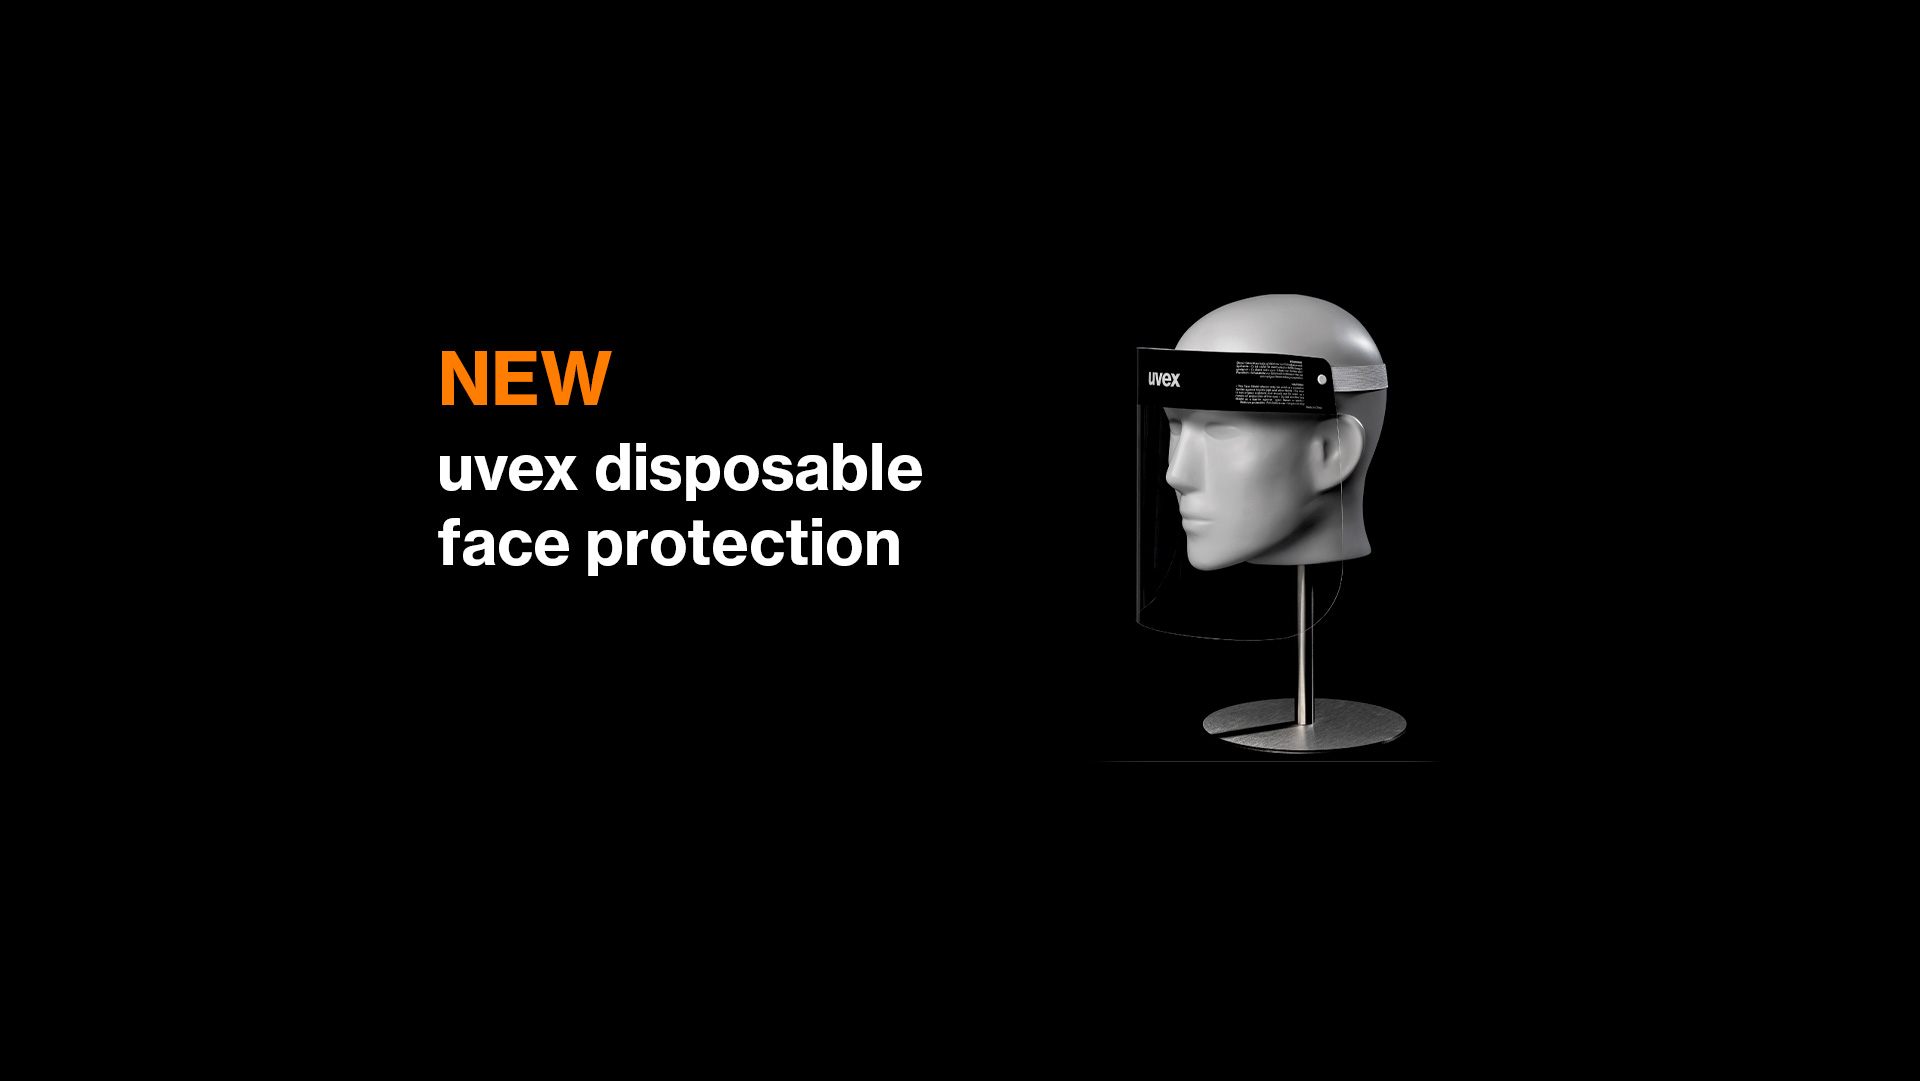 uvex disposable faceshield